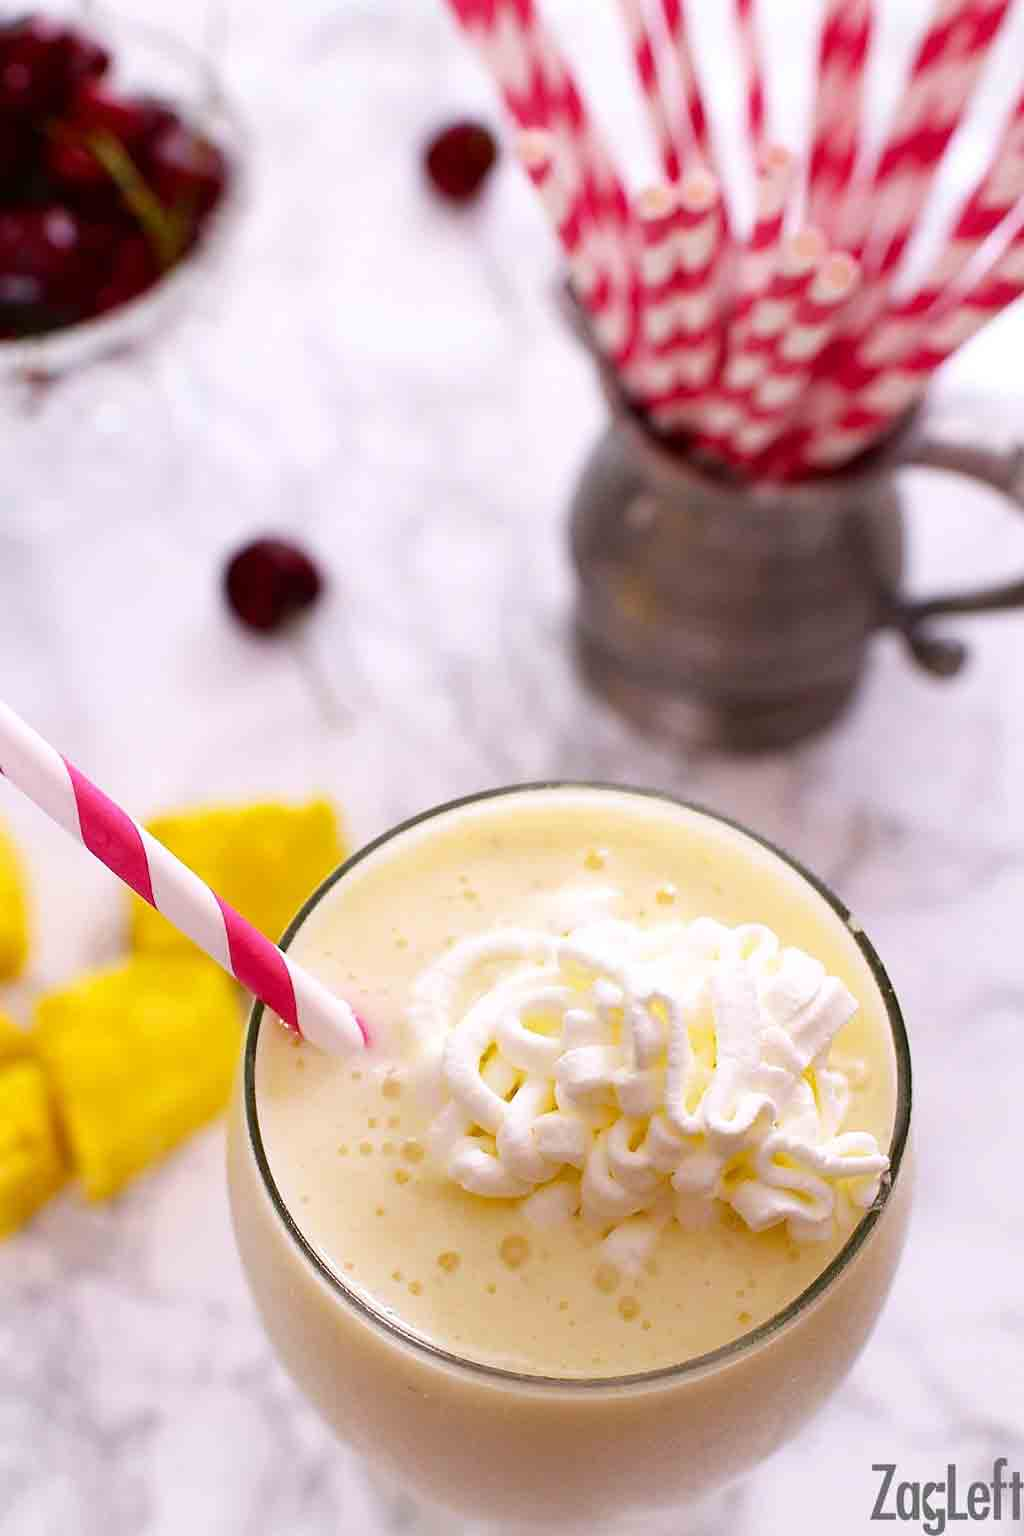 An overhead view of a smoothie topped with whipped cream next to a metal jar of red and white straws and a a few sliced pineapple pieces